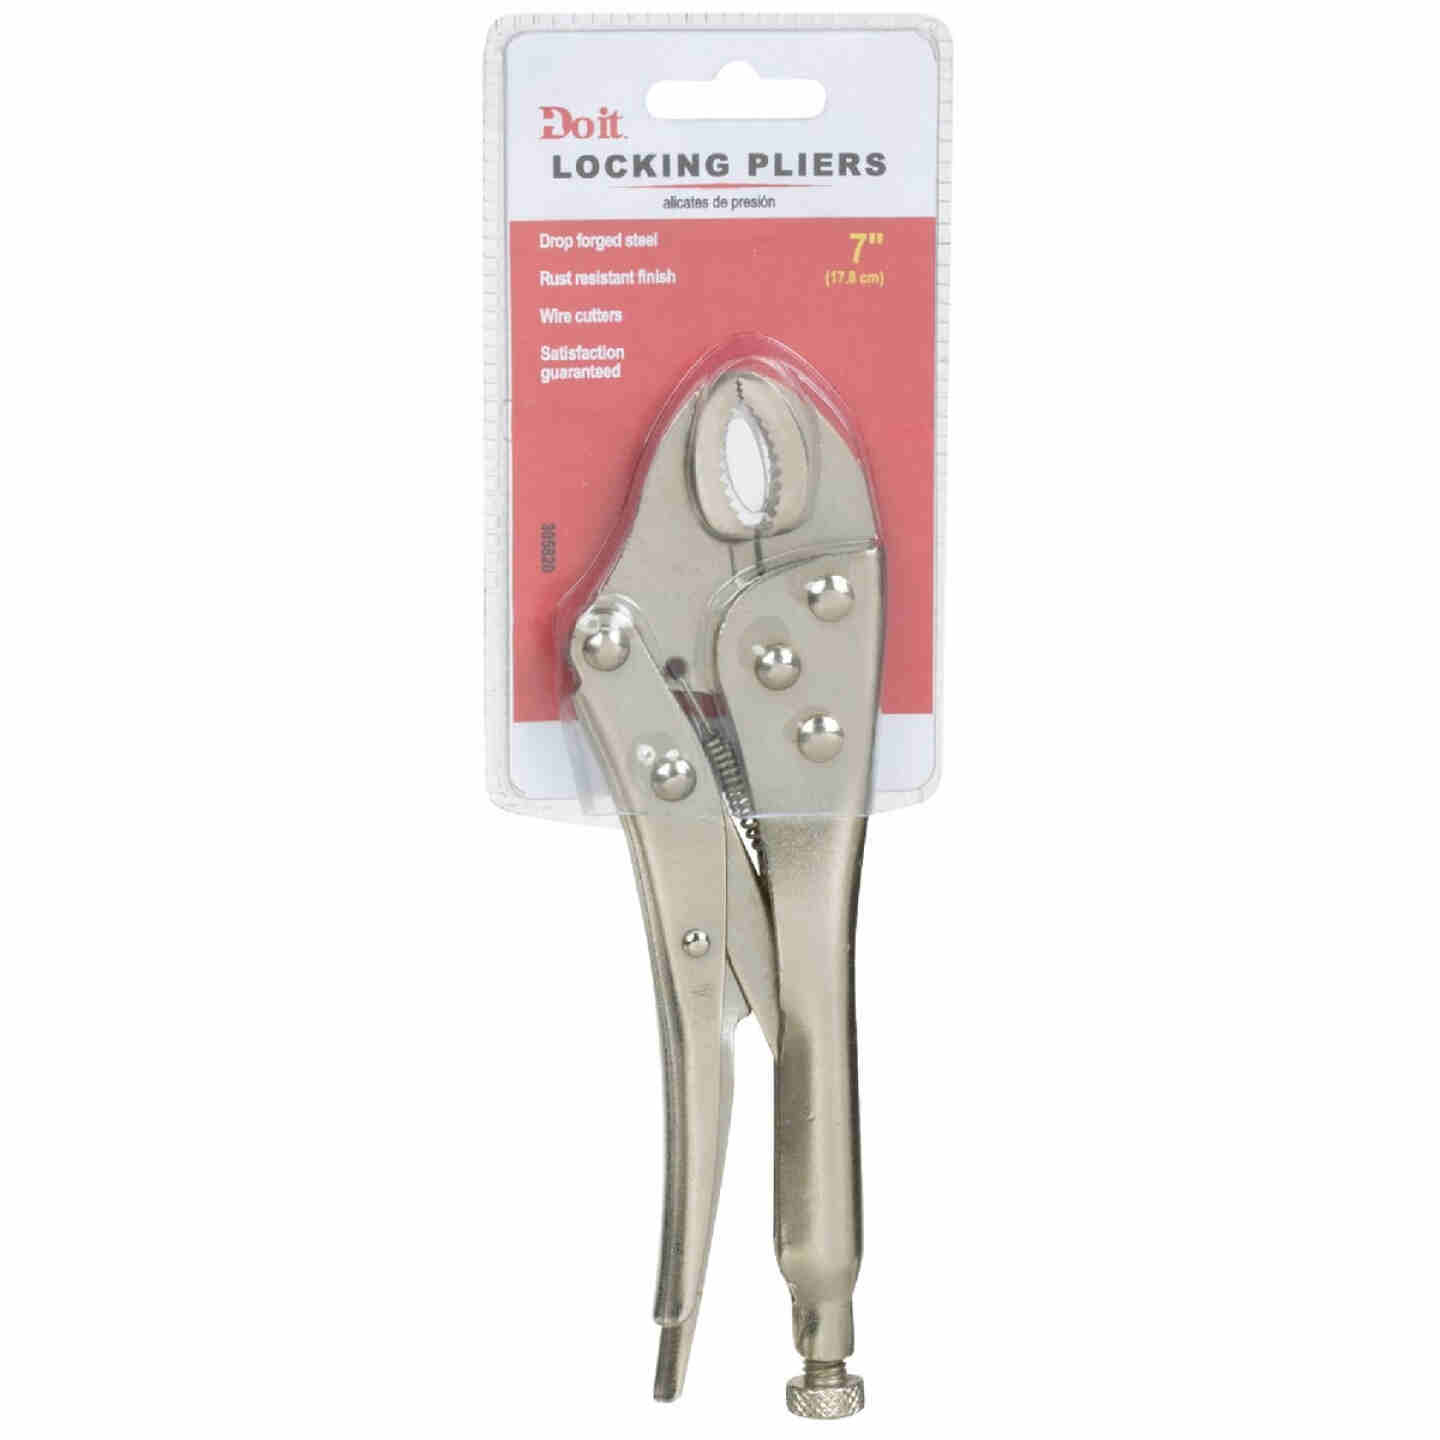 Do it 7 In. Curved Jaw Locking Pliers Image 2